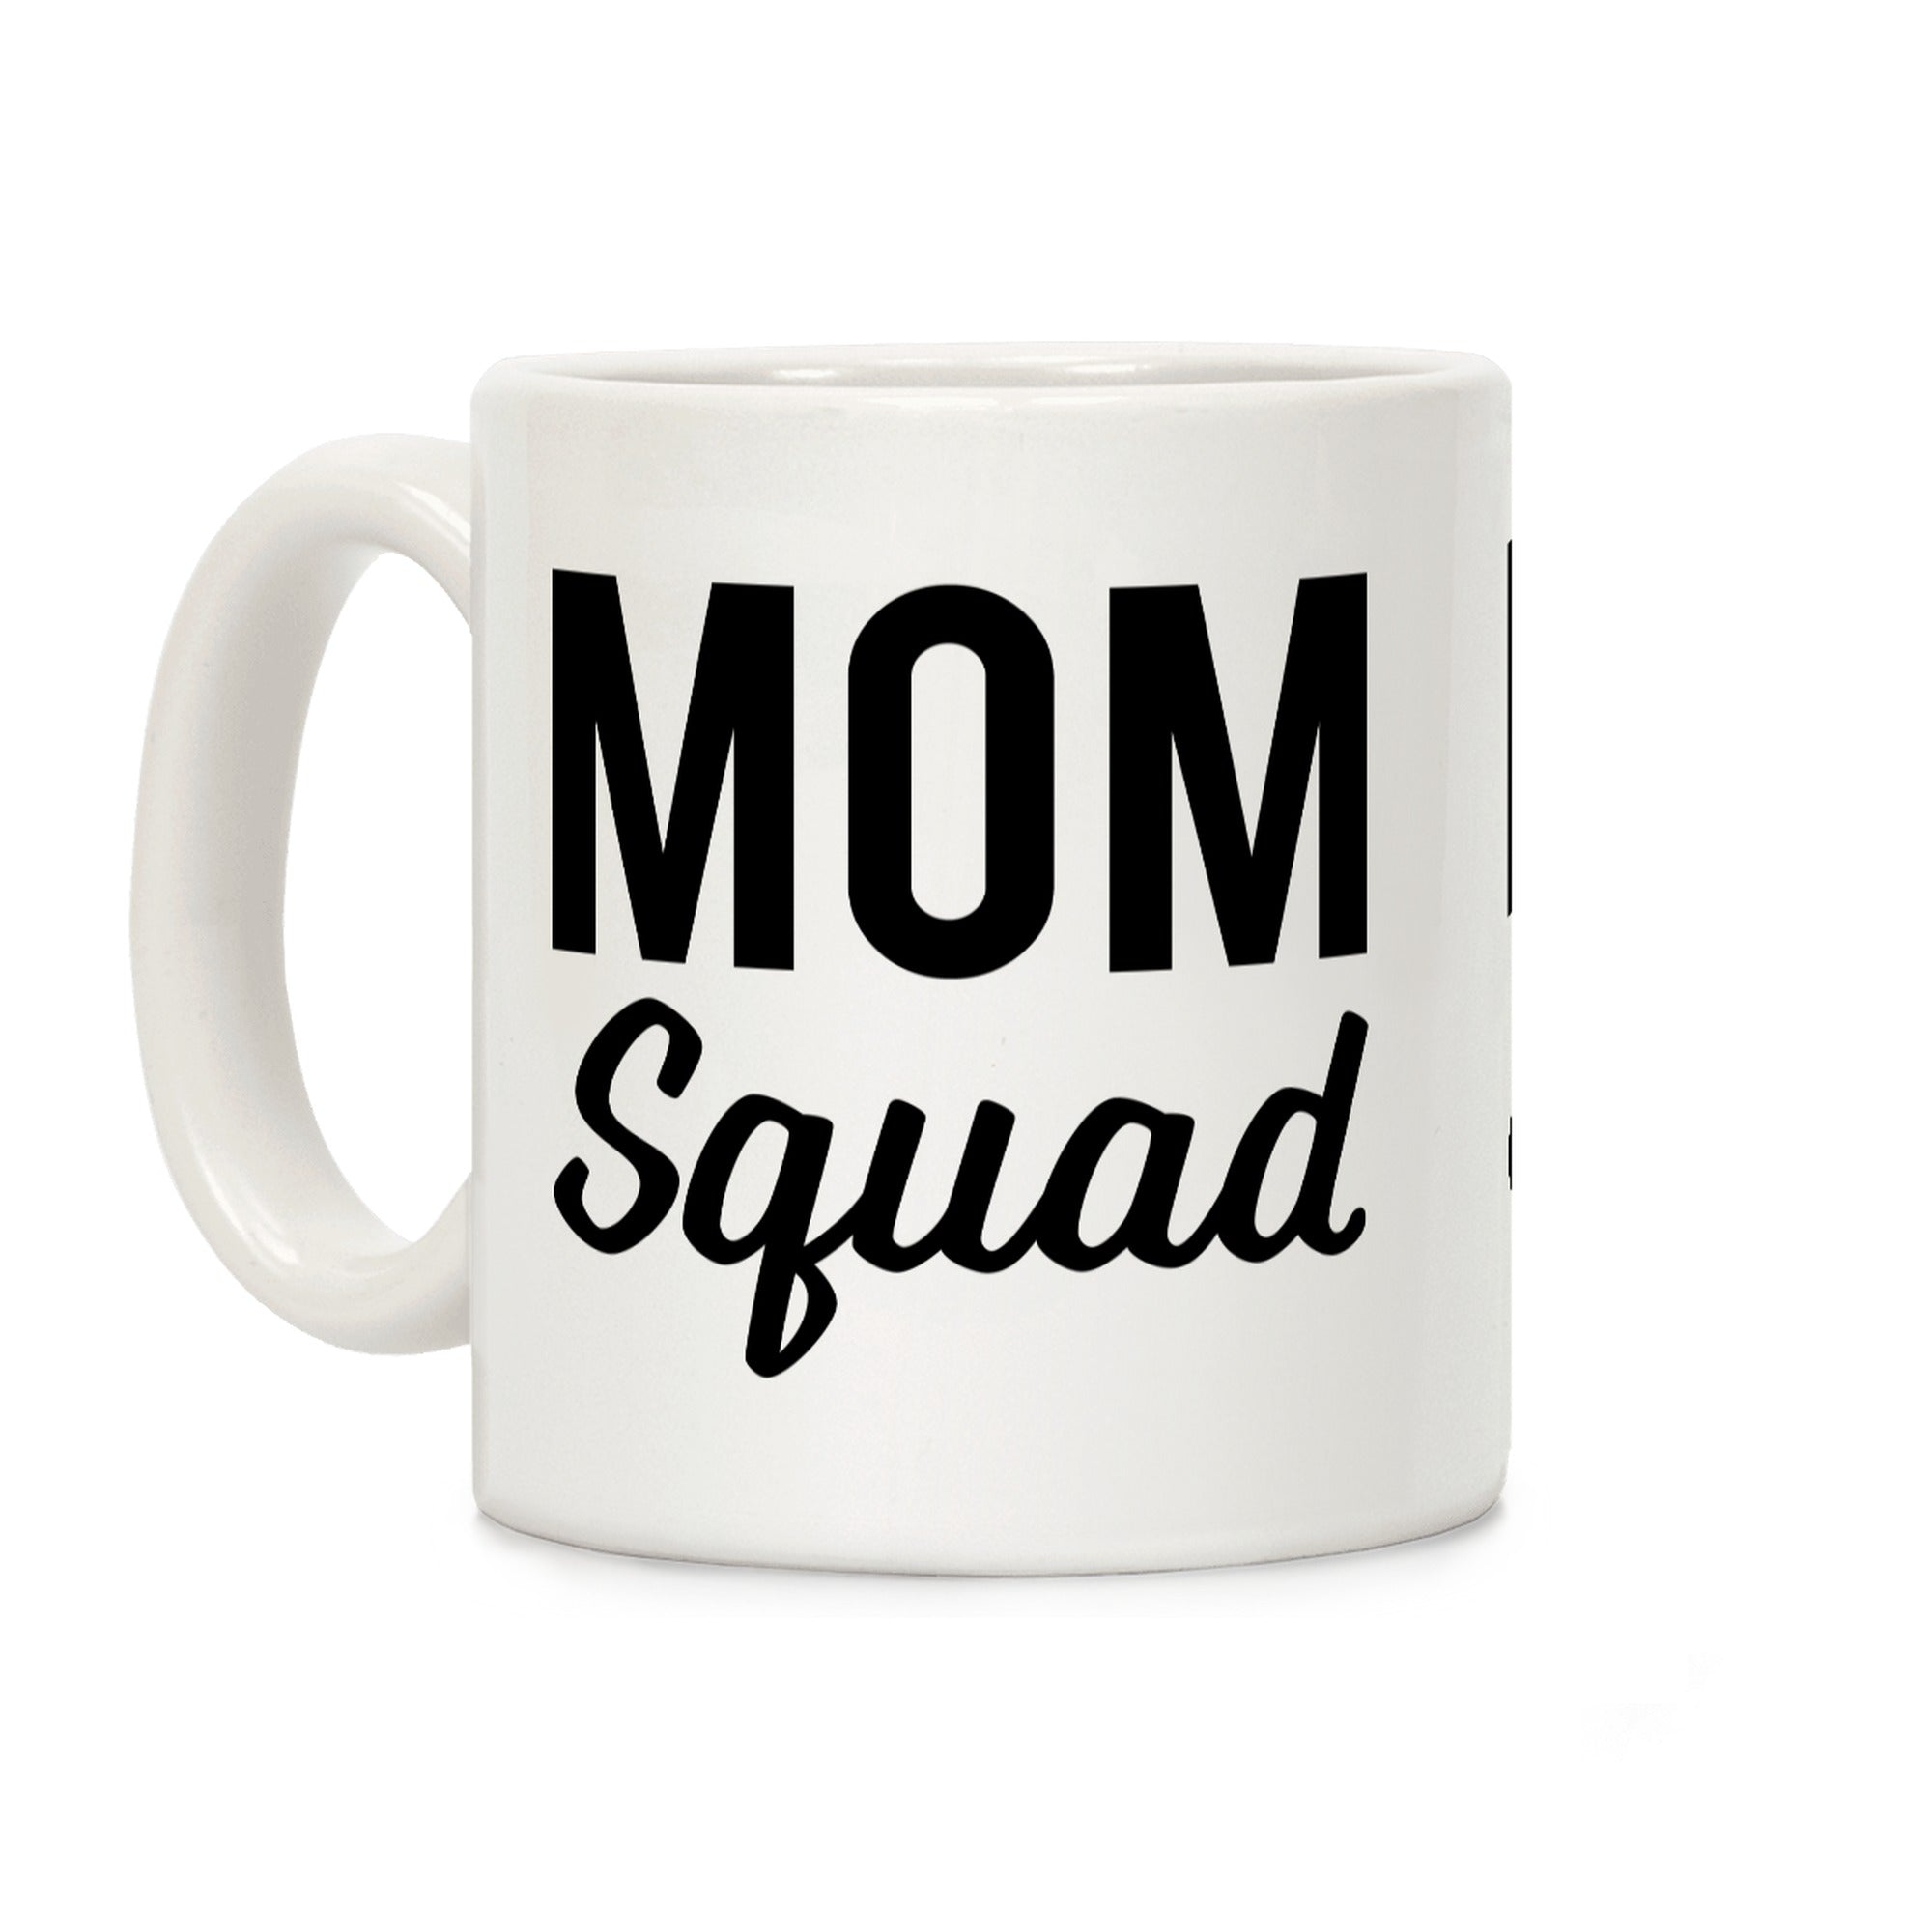 Mom Squad Ceramic Coffee Mug by LookHUMAN